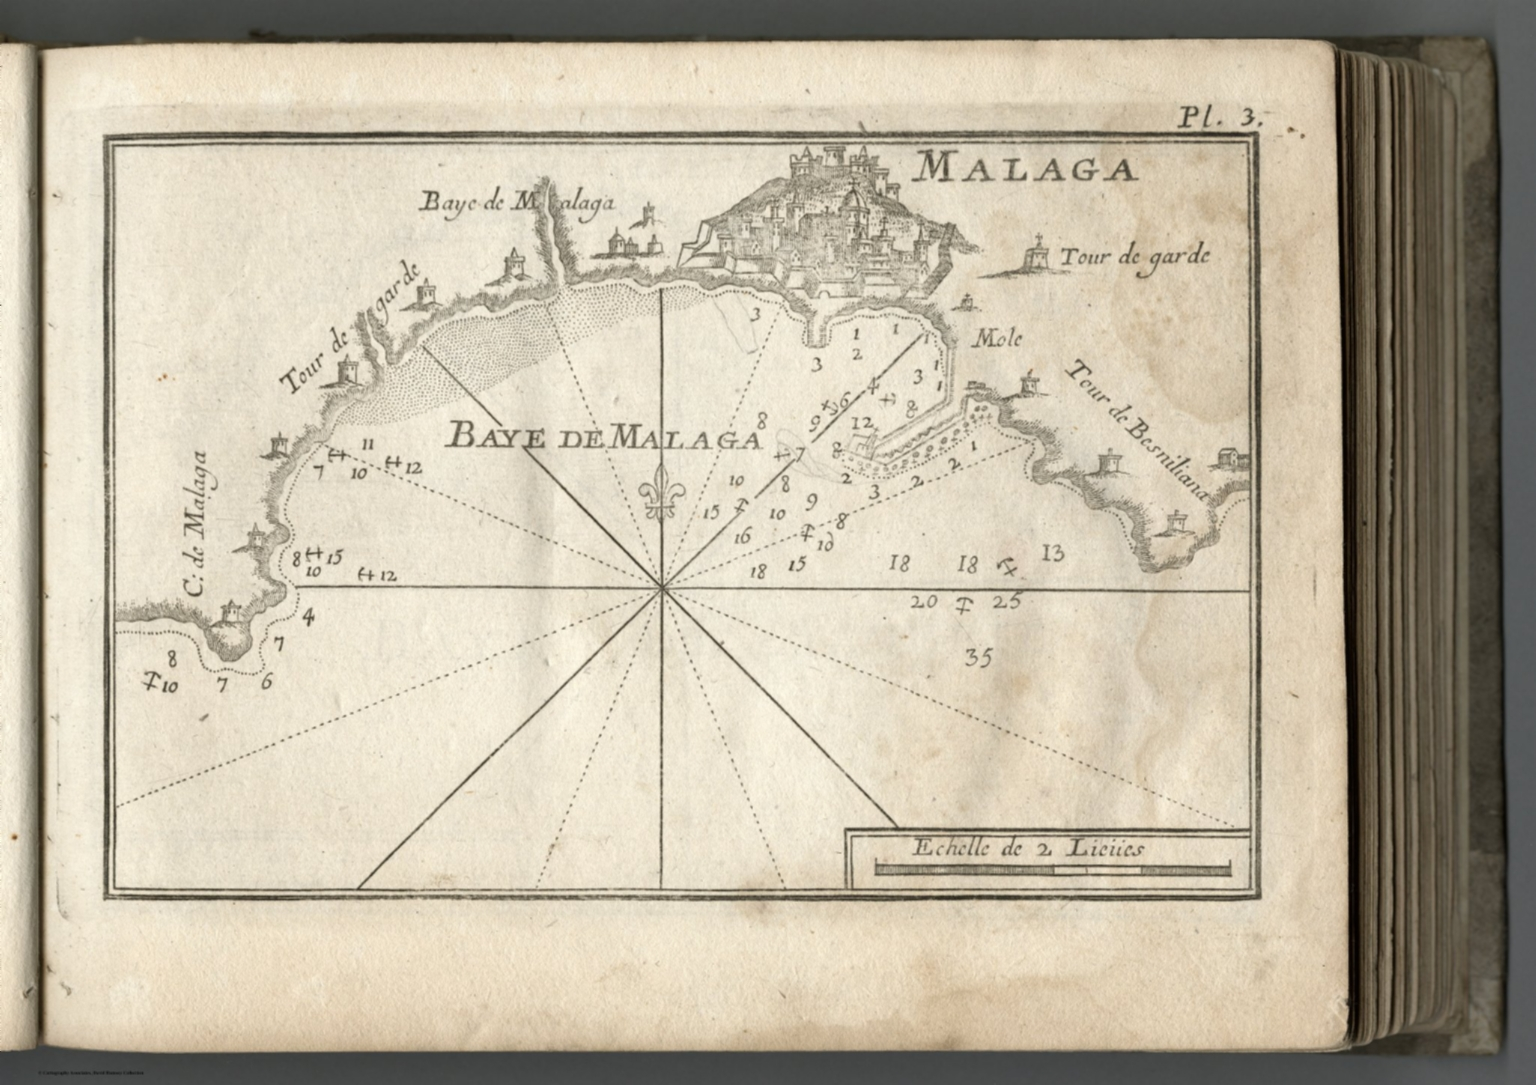 Pl. 3. Malaga Bay, Spain. - David Rumsey Historical Map ... Historic Map Of Malaga on map of marsala, map of penedes, map of italica, map of costa de la luz, map of graysville, map of tampere, map of venice marco polo, map of mount ephraim, map of mutare, map of puerto rico gran canaria, map of macapa, map of sagunto, map of soria, map of getxo, map of iruna, map of cudillero, map of isla margarita, map of andalucia, map of bizkaia, map of monchengladbach,